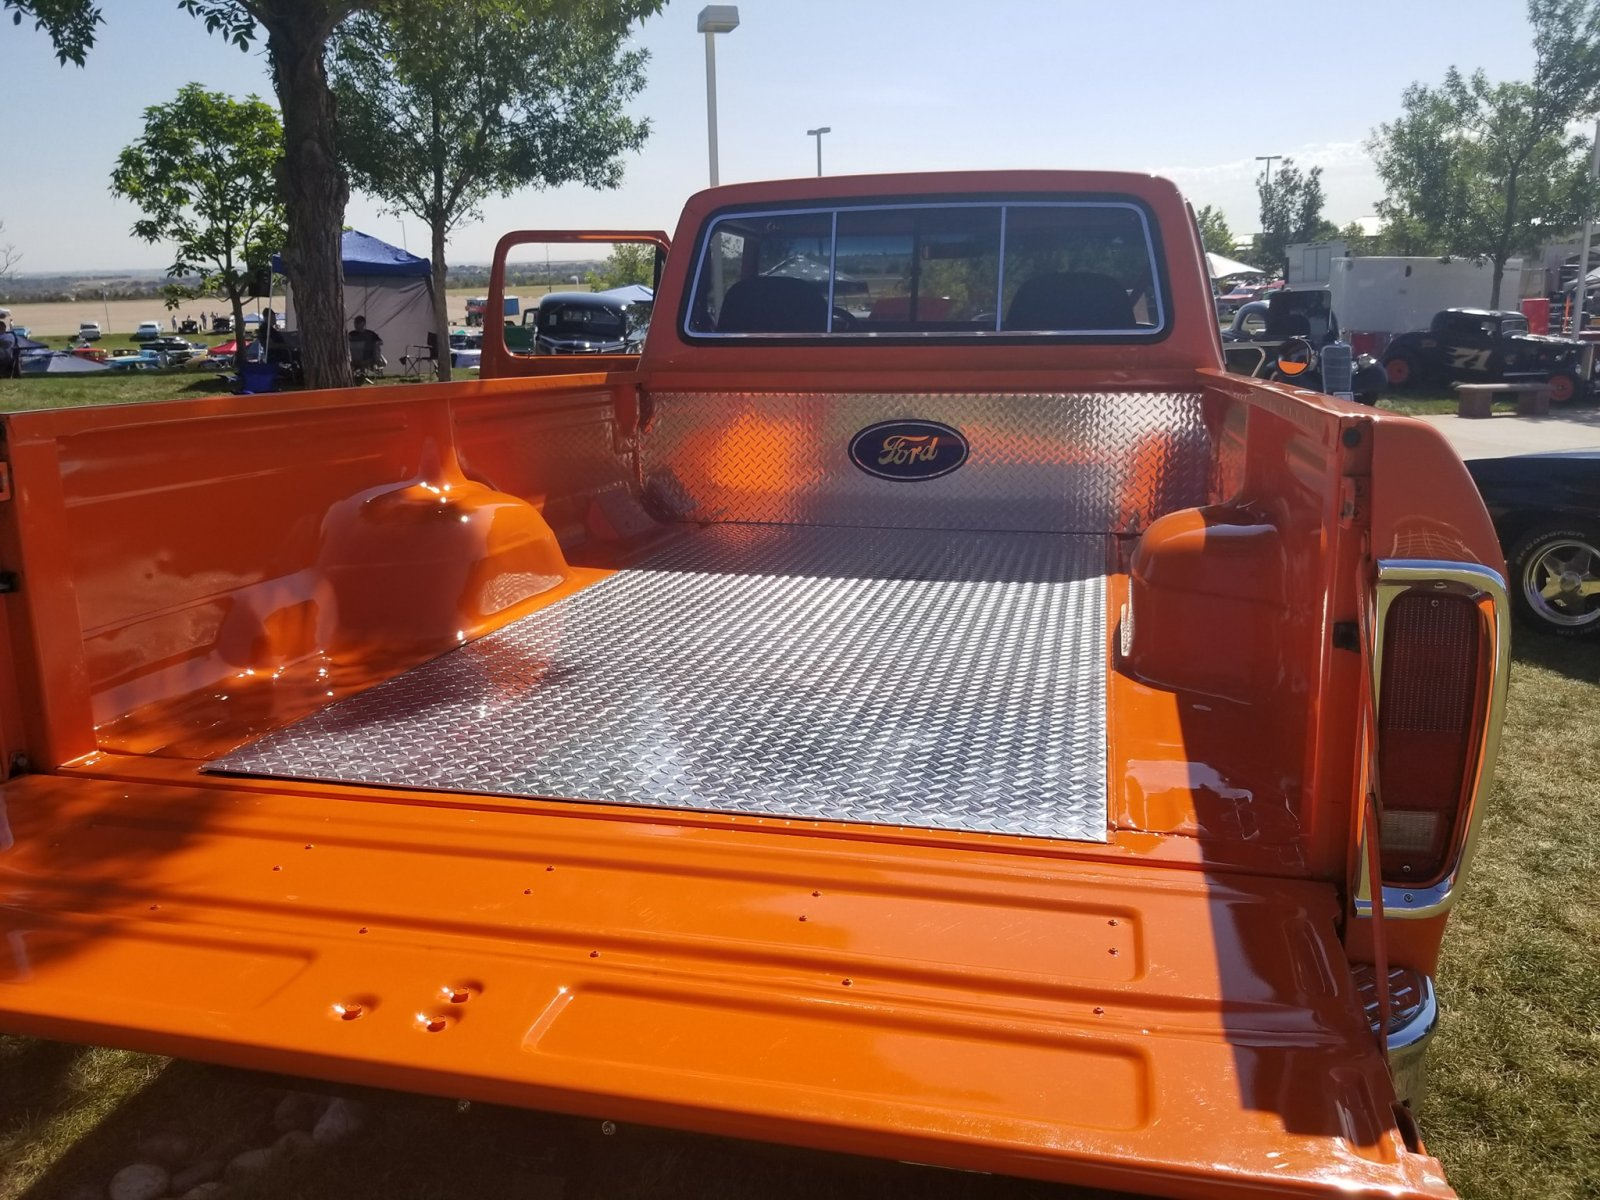 1979 Ford F250 Truck Has A 460ci With A C6 Transmission 4.jpg